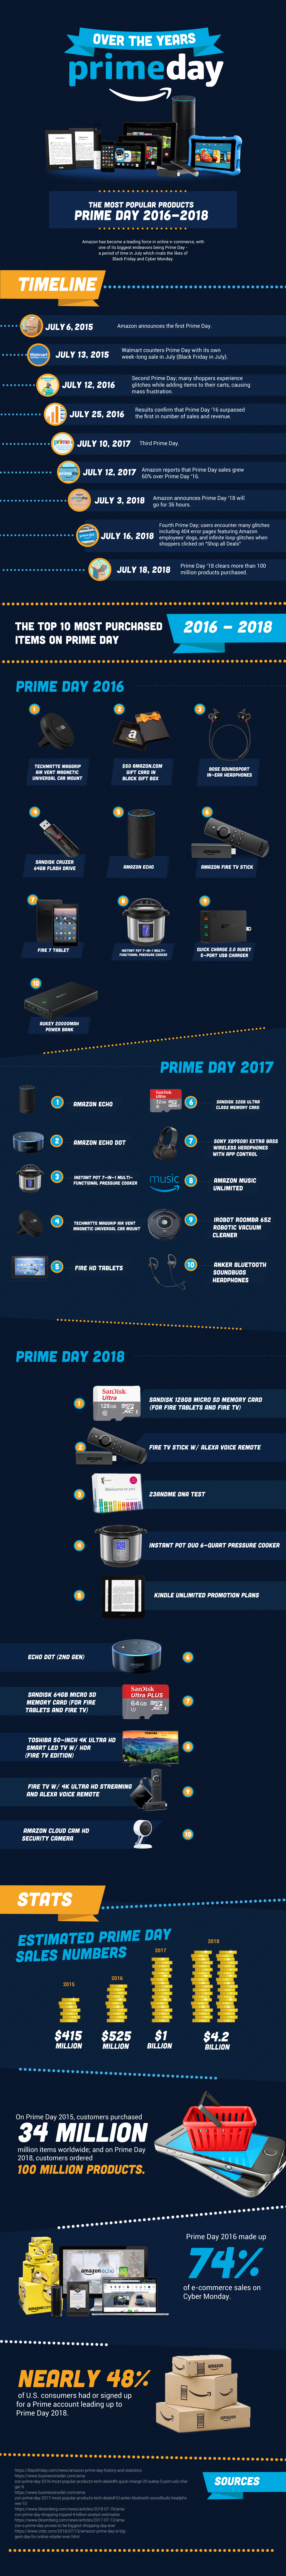 Amazon Prime Day Over the Years